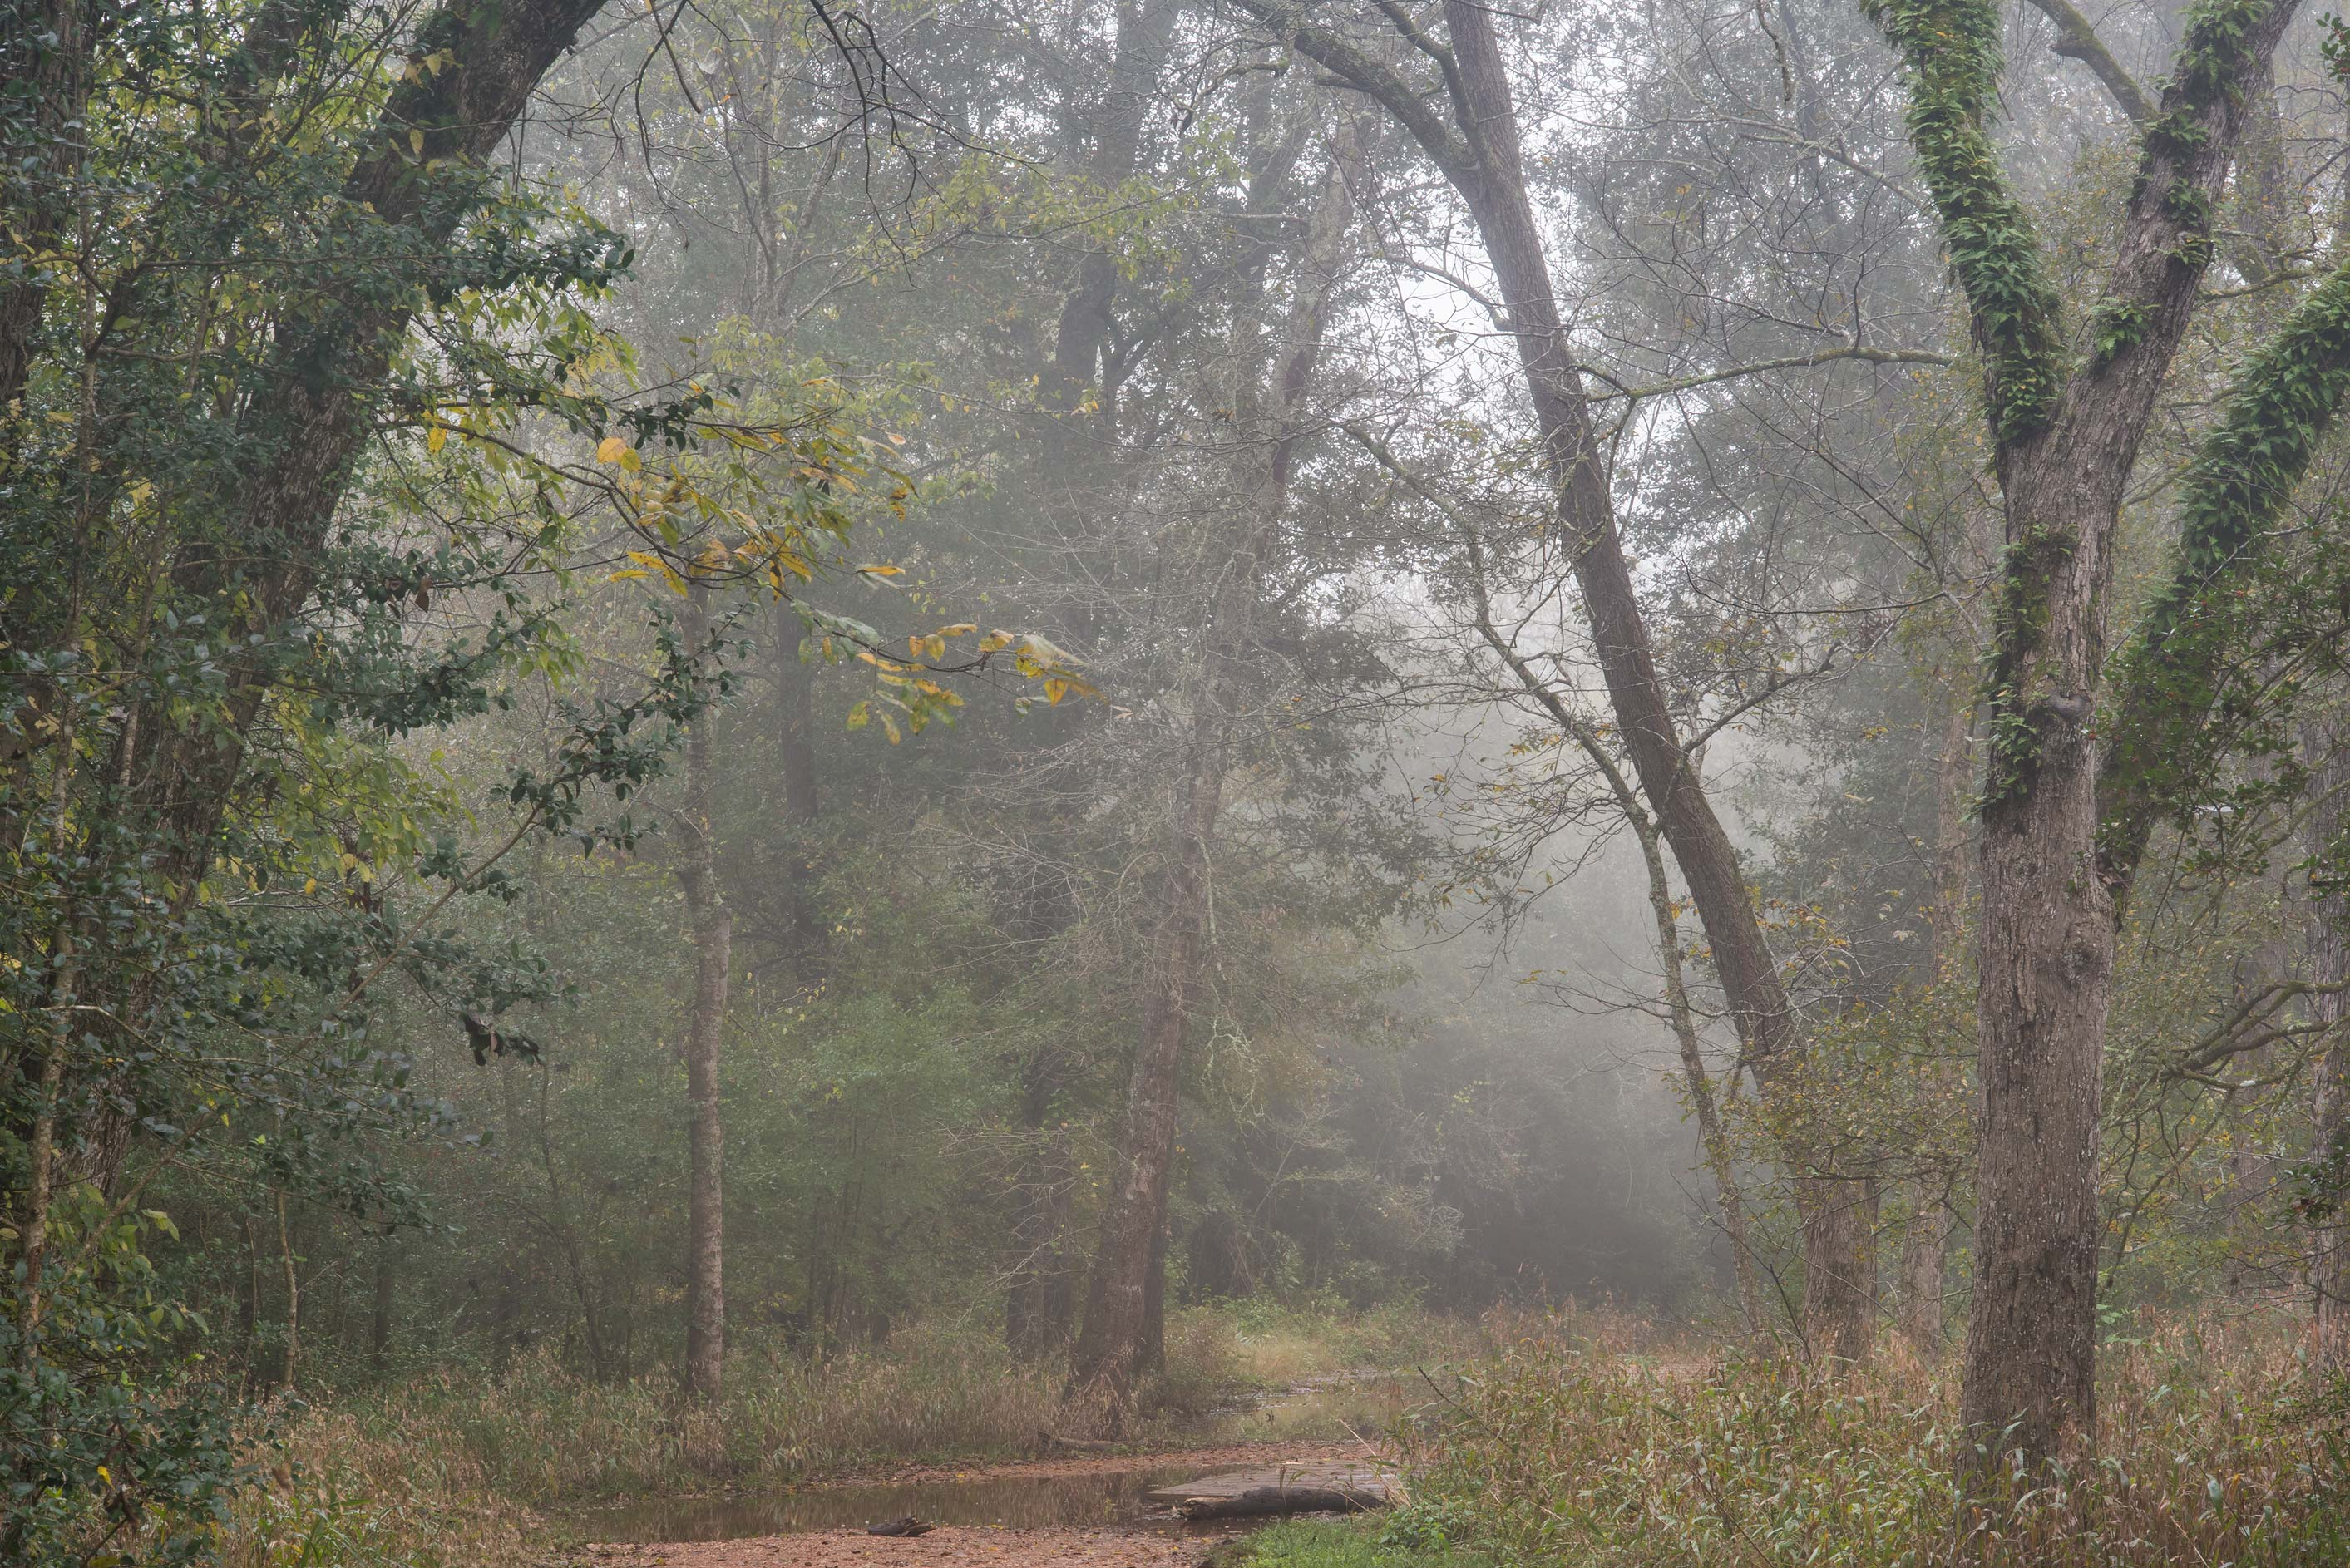 Oxbow area of Raccoon Run Trail in fog in Lick Creek Park. College Station, Texas